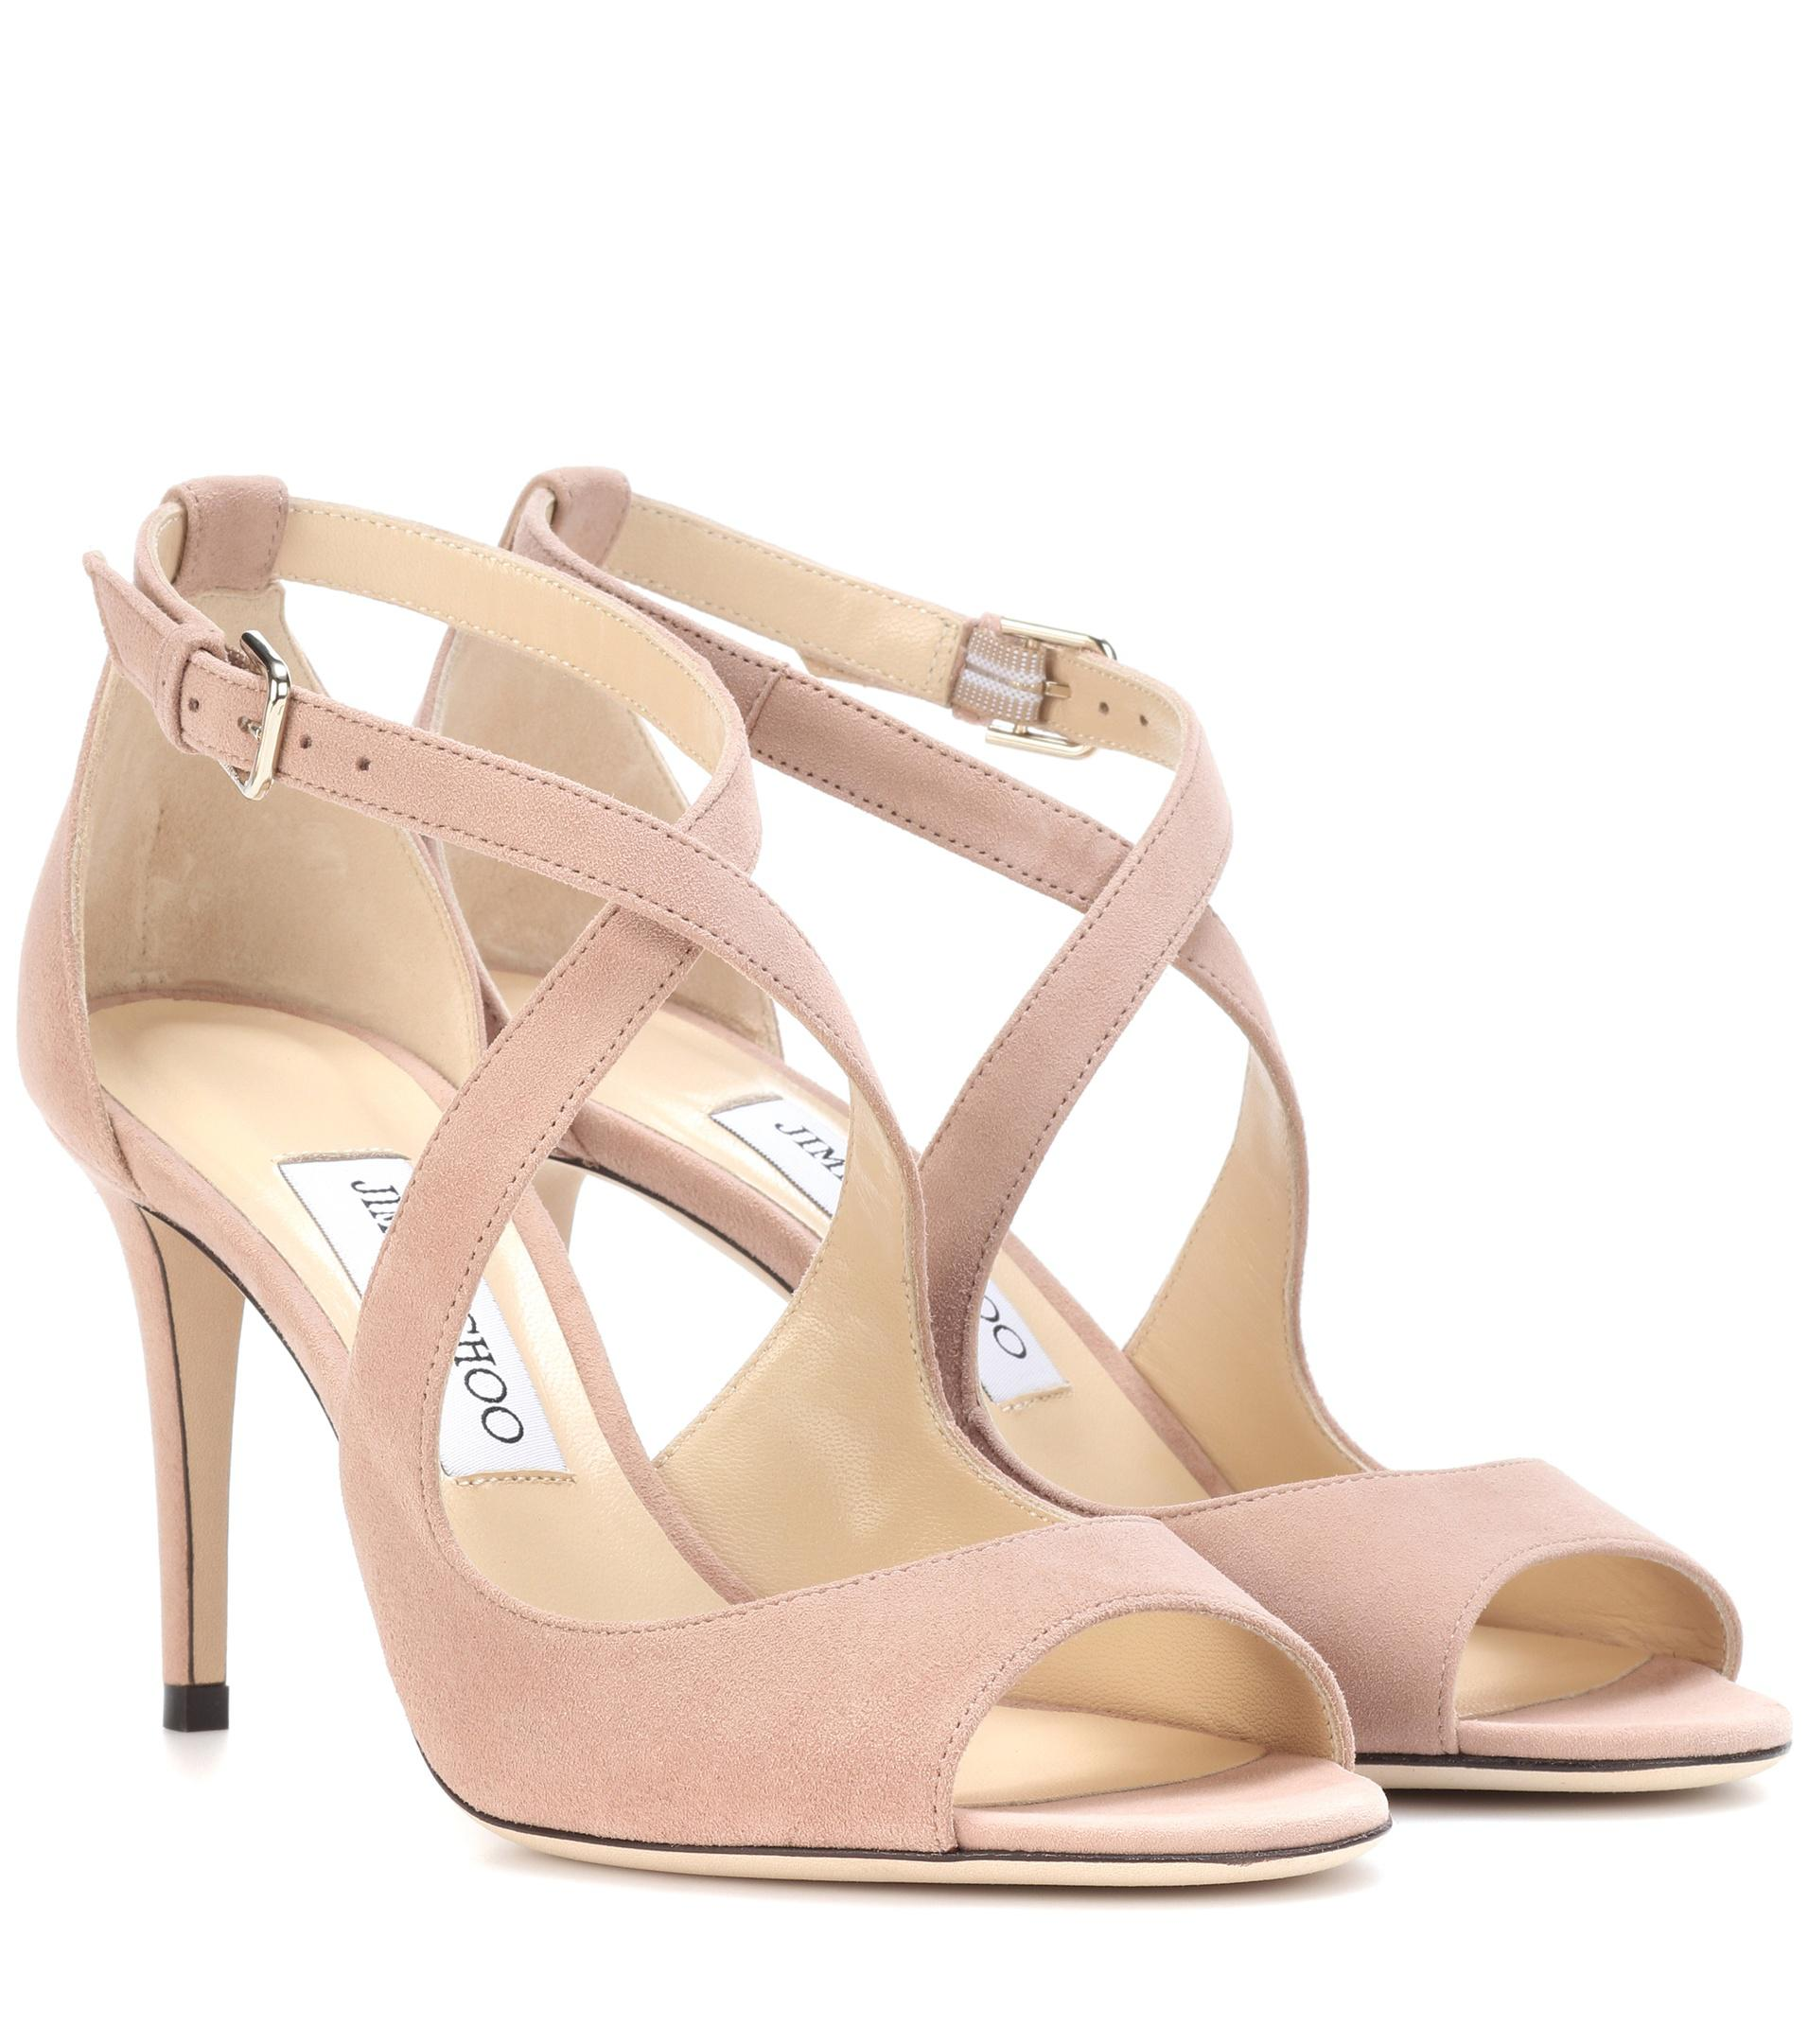 e990b6d5150f ... new zealand jimmy choo. womens pink emily 85 suede sandals ee4b6 e4f20